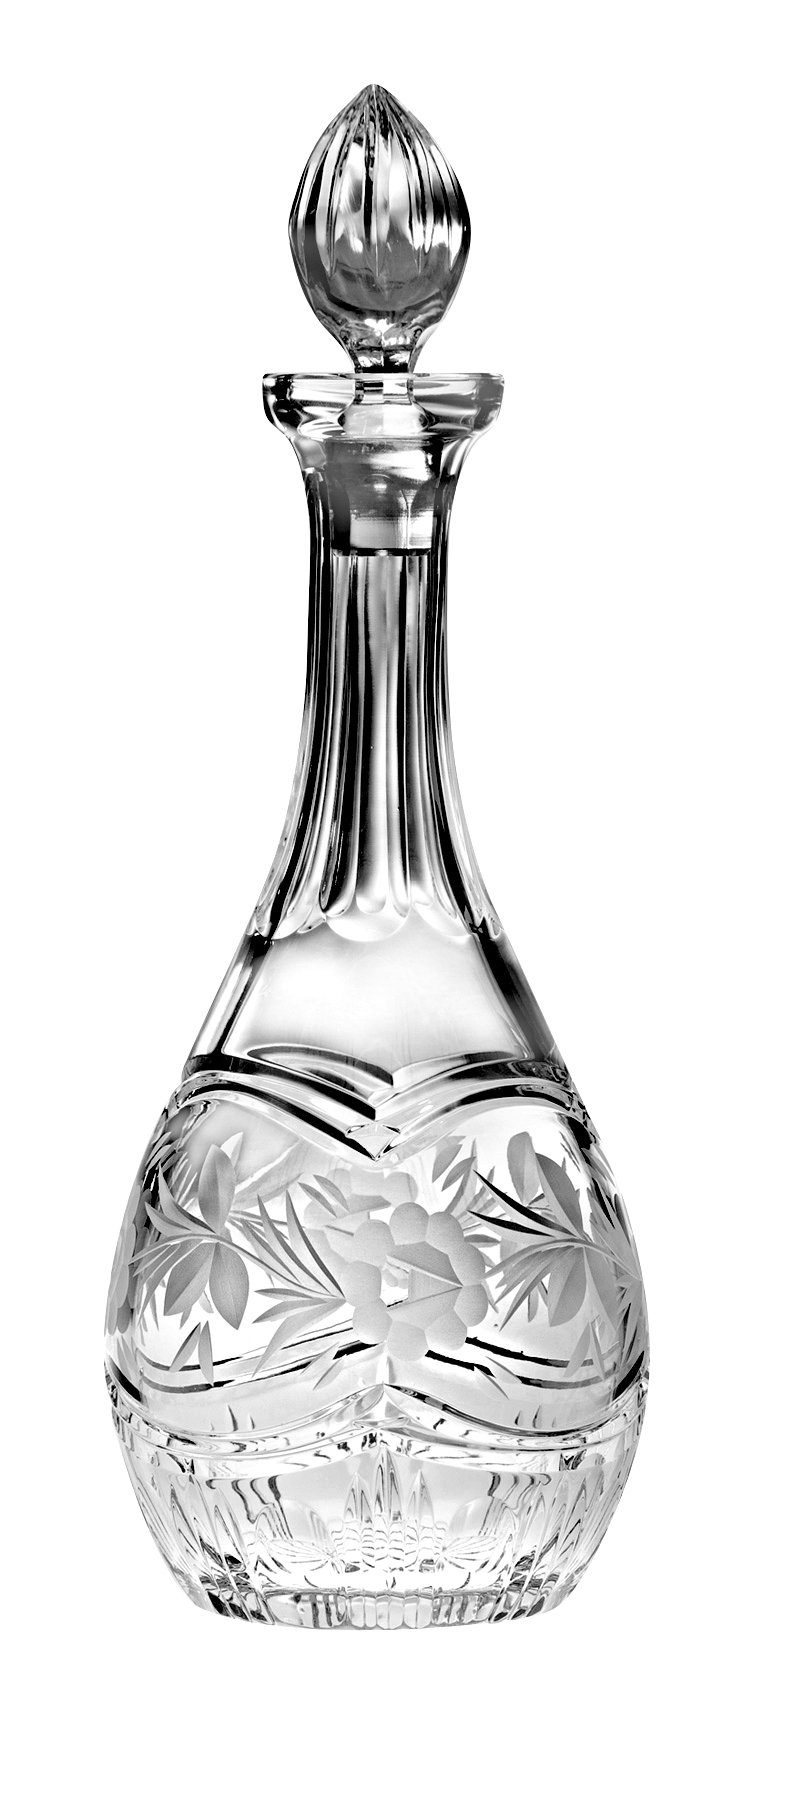 Barski - Hand Cut - Mouth Blown - Crystal - Wine Decanter - with Handle - With Rose Design - 38 oz. - Made in Europe